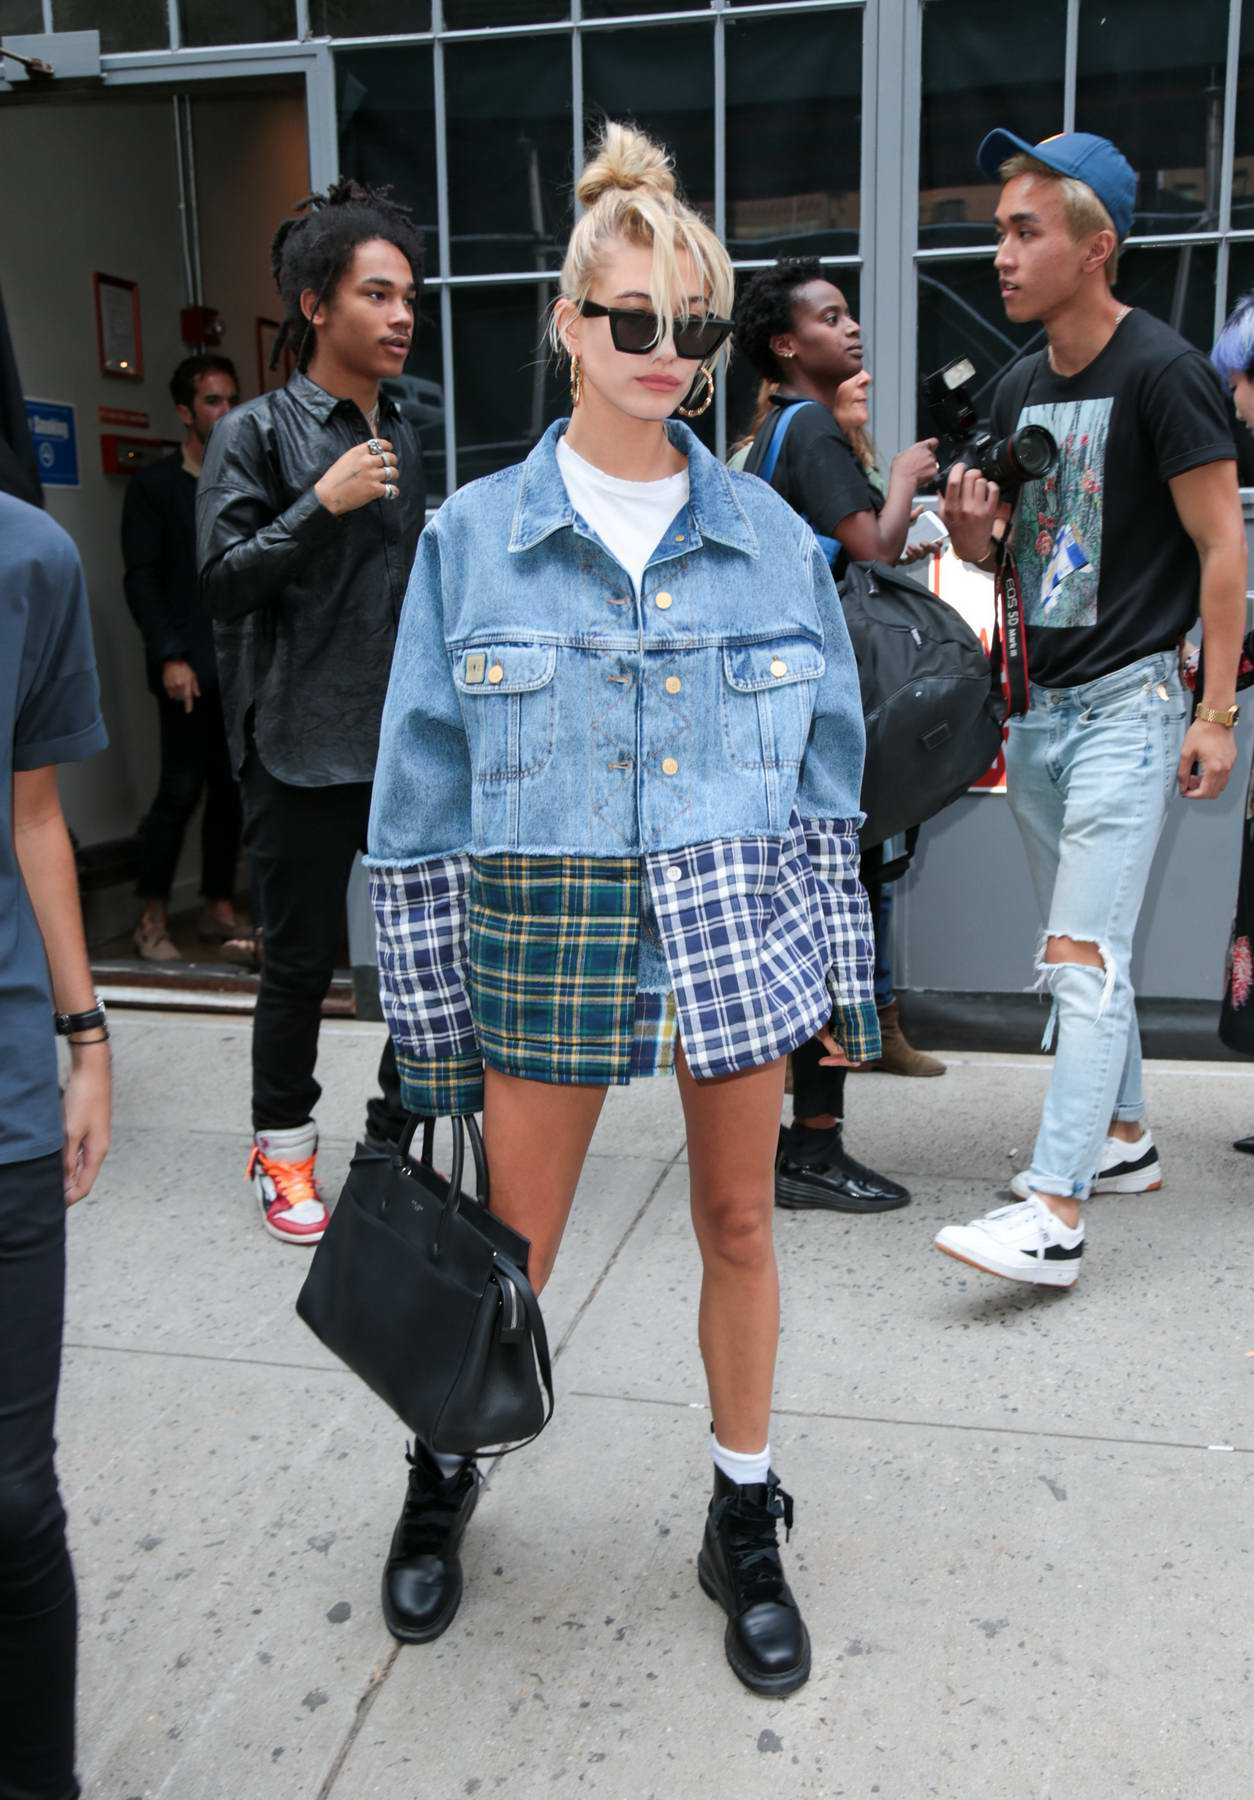 Hailey Baldwin spotted during fashion week in New York City